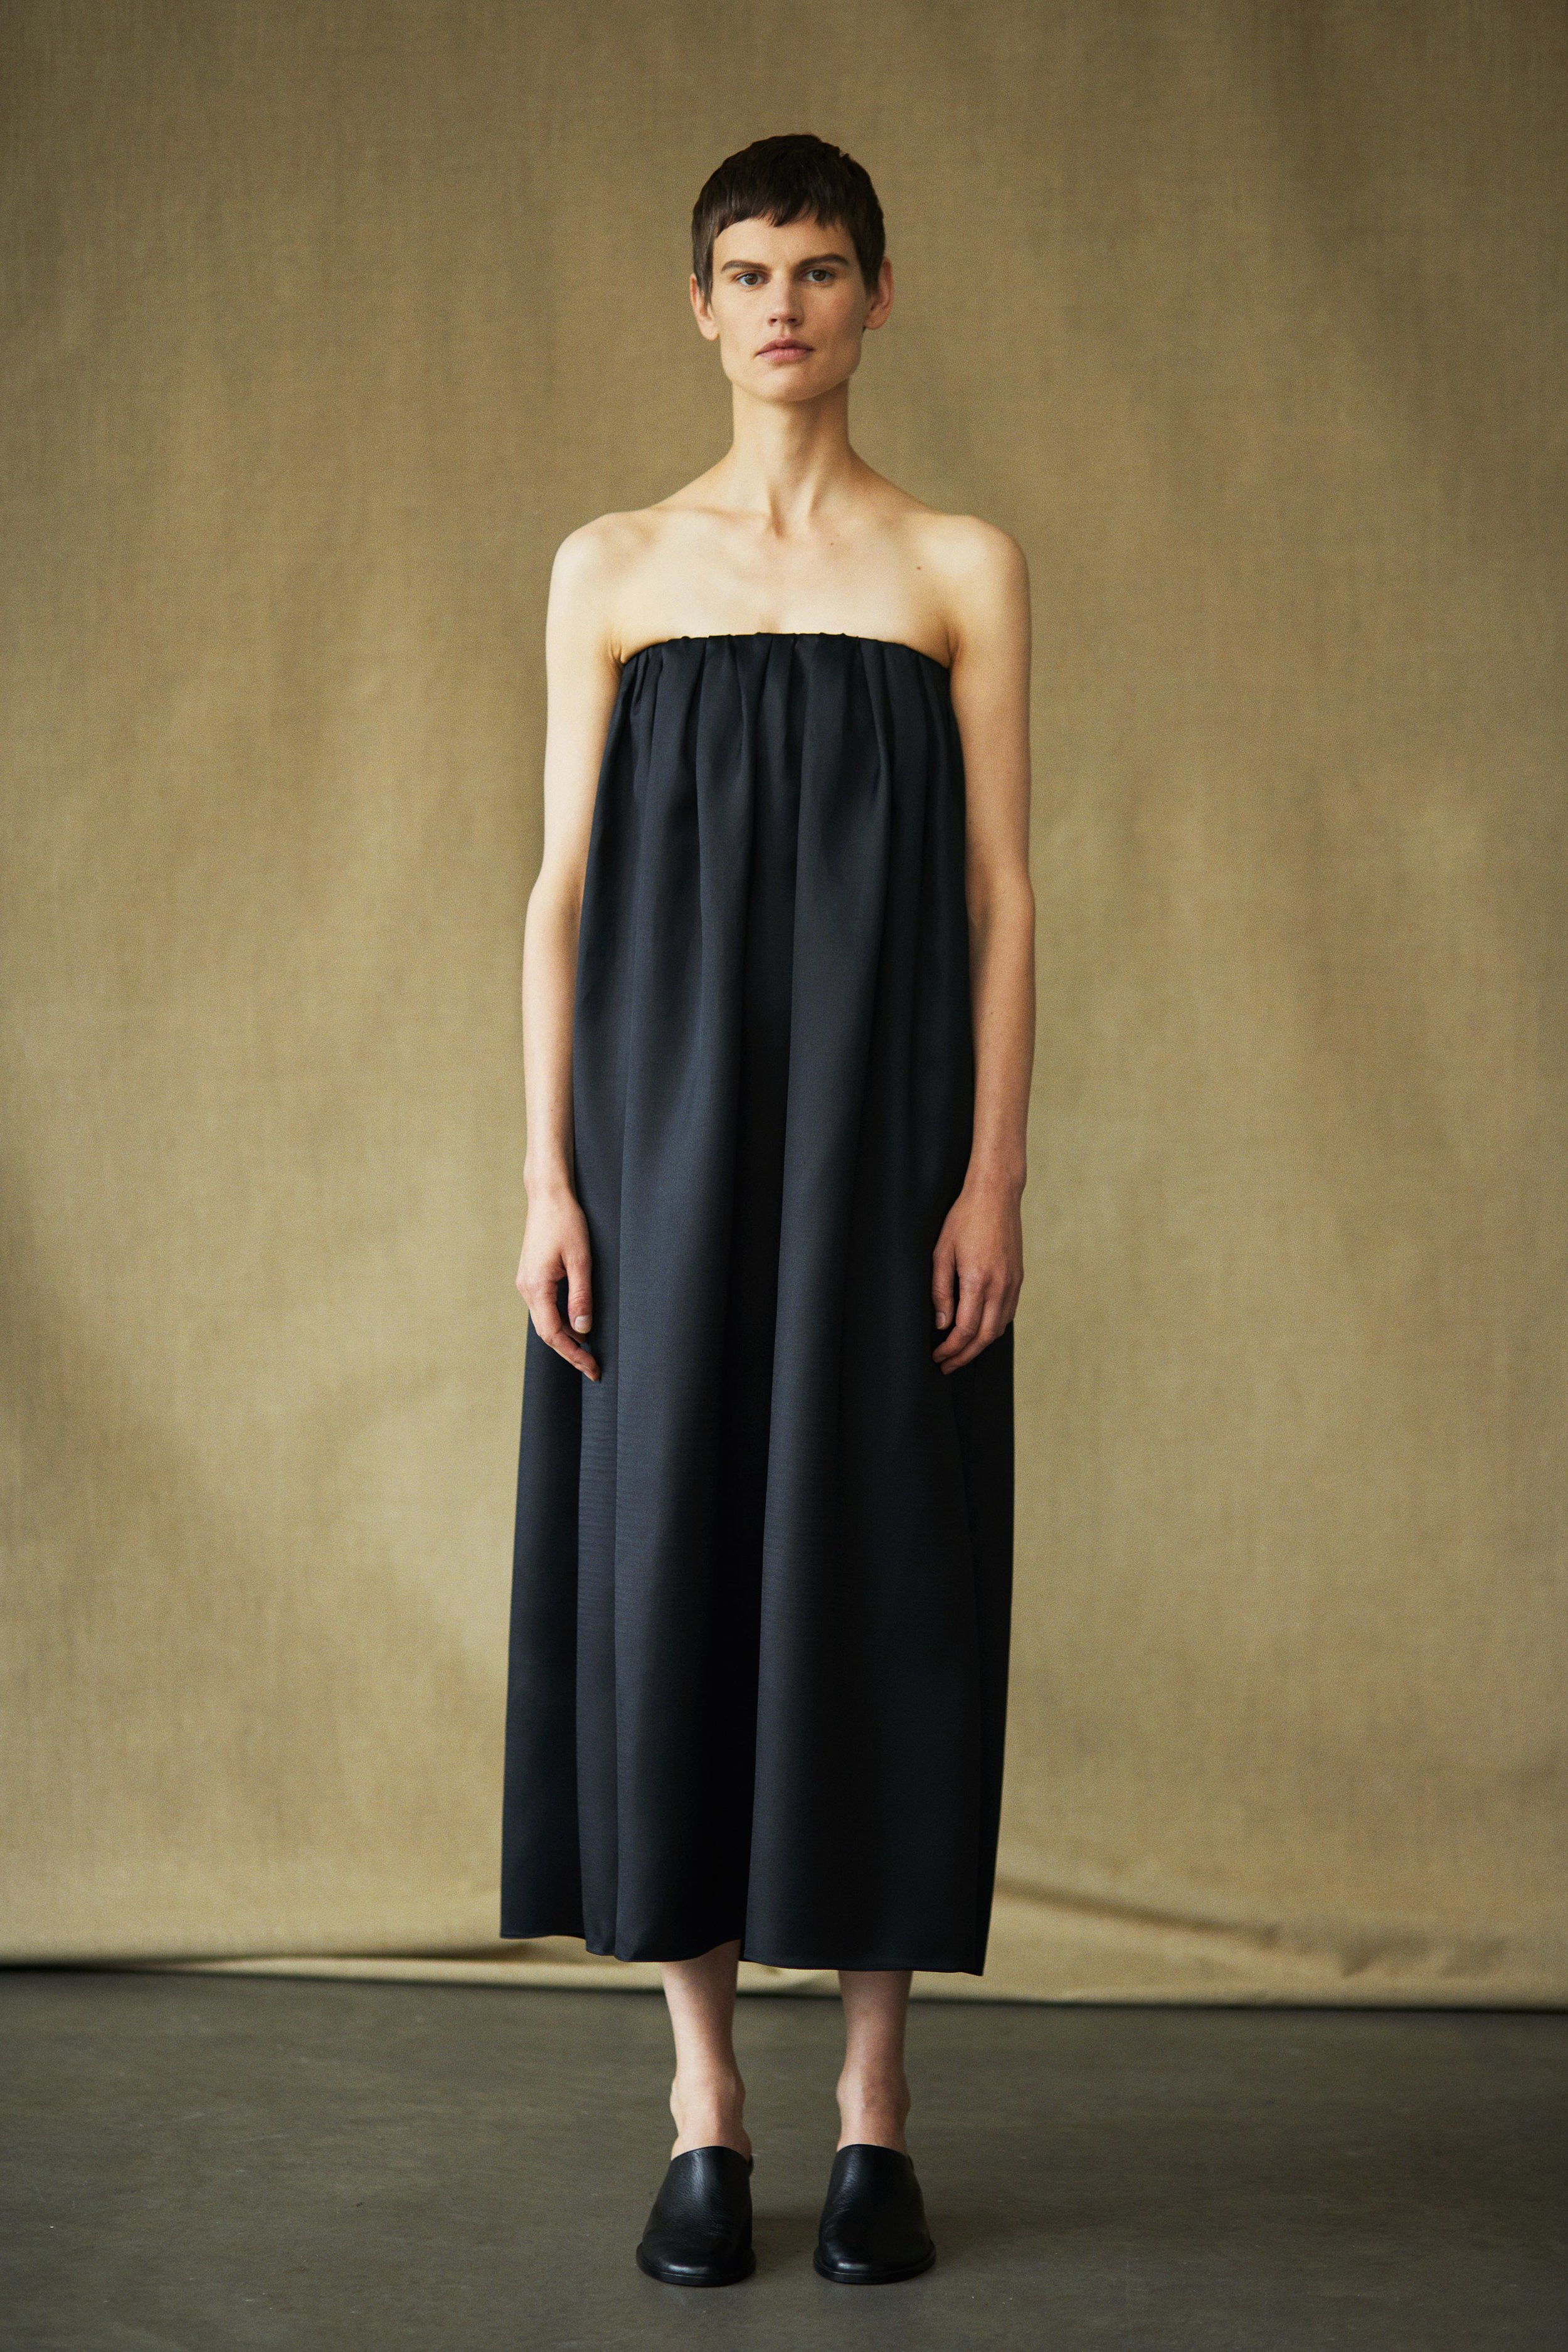 00009-The-Row-collection-spring-2019-ready-to-wear.jpg